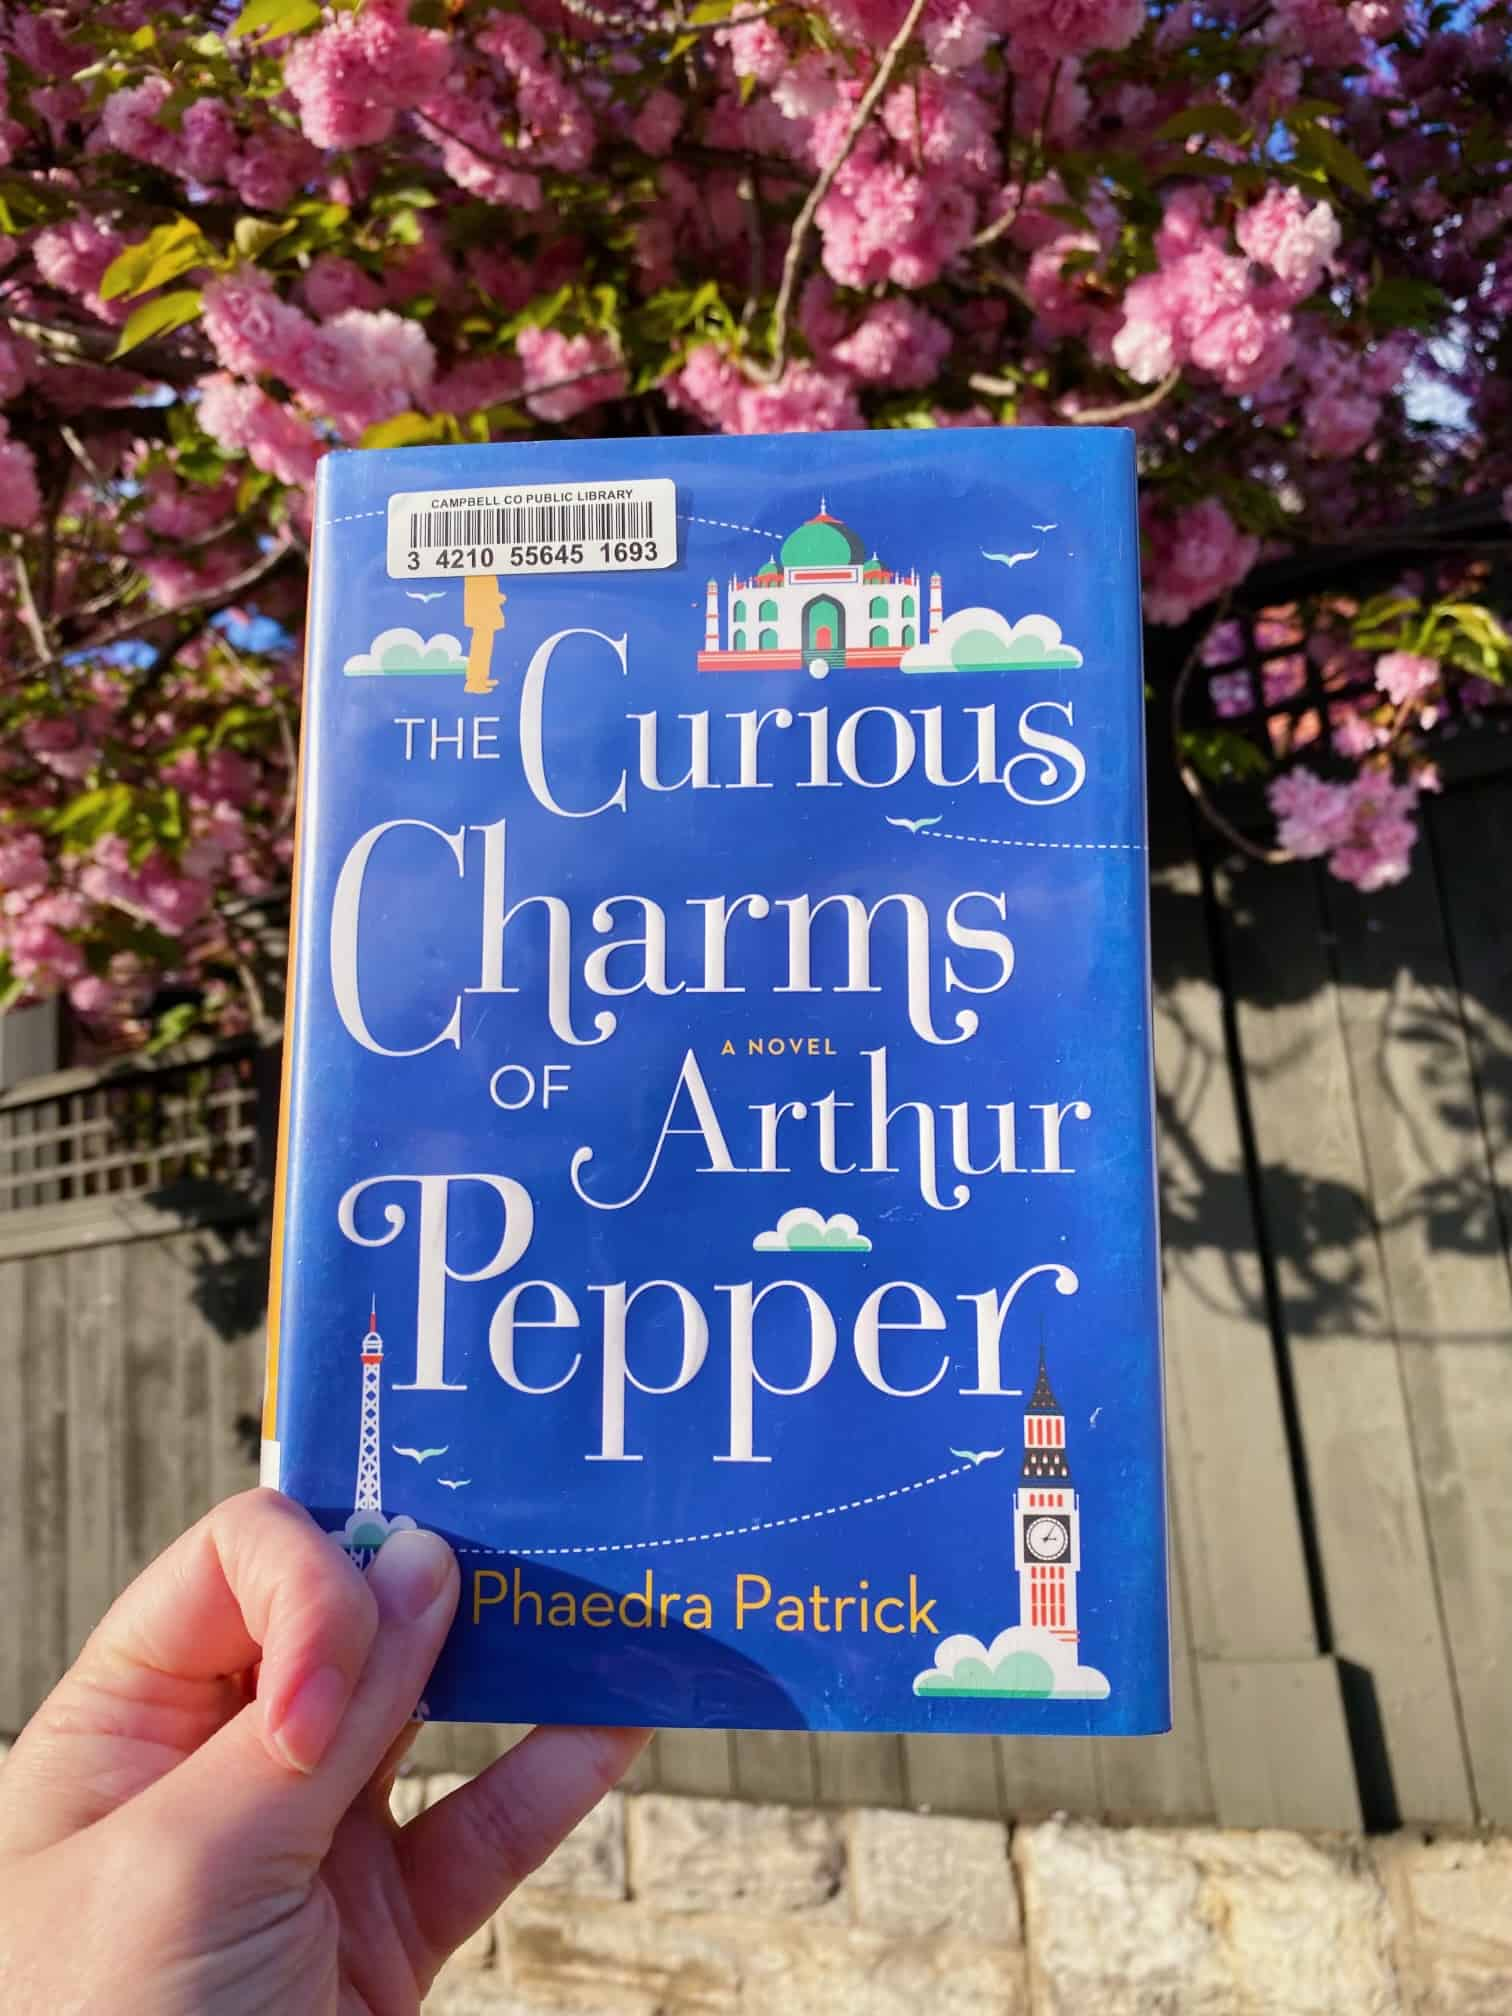 An image for a book review. Photograph of The Curious Charms of Arthur Pepper by Phaedra Patrick